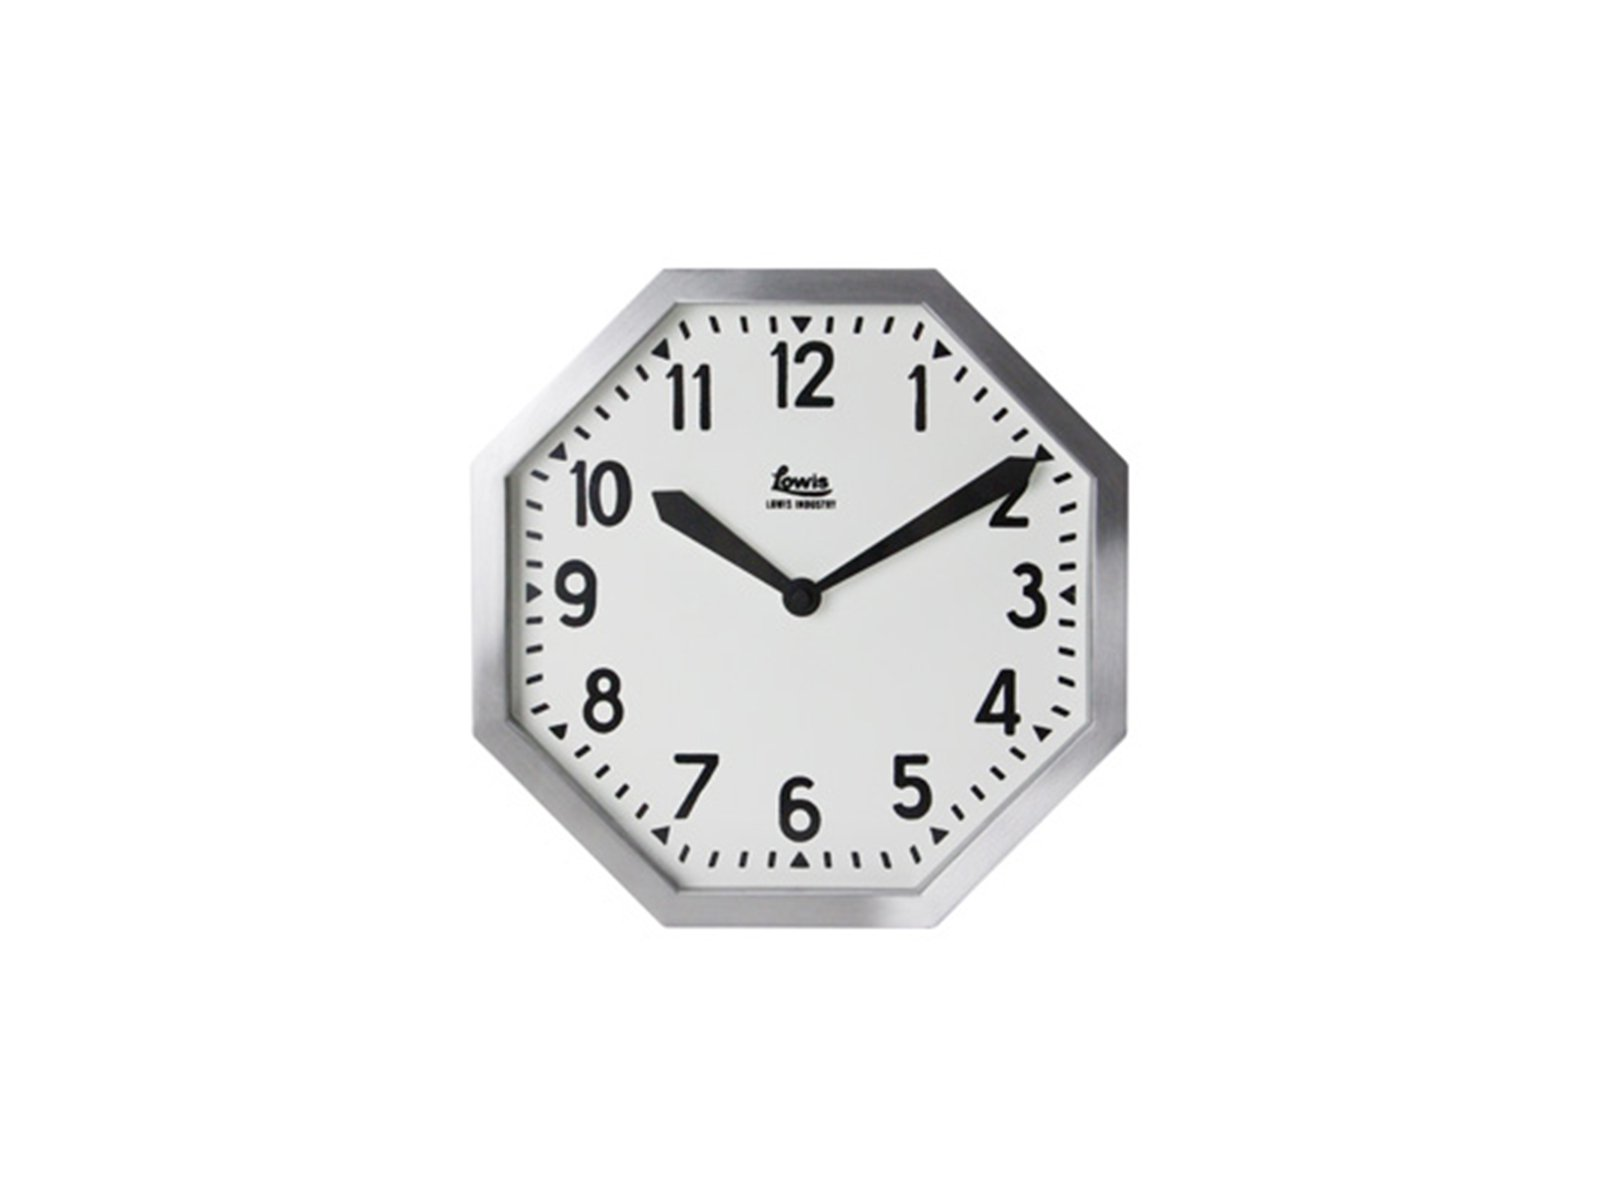 DETAIL/Lowis Industry Octagon Clock ルイスインダストリーオクタゴンクロック 壁掛け時計【送料無料】